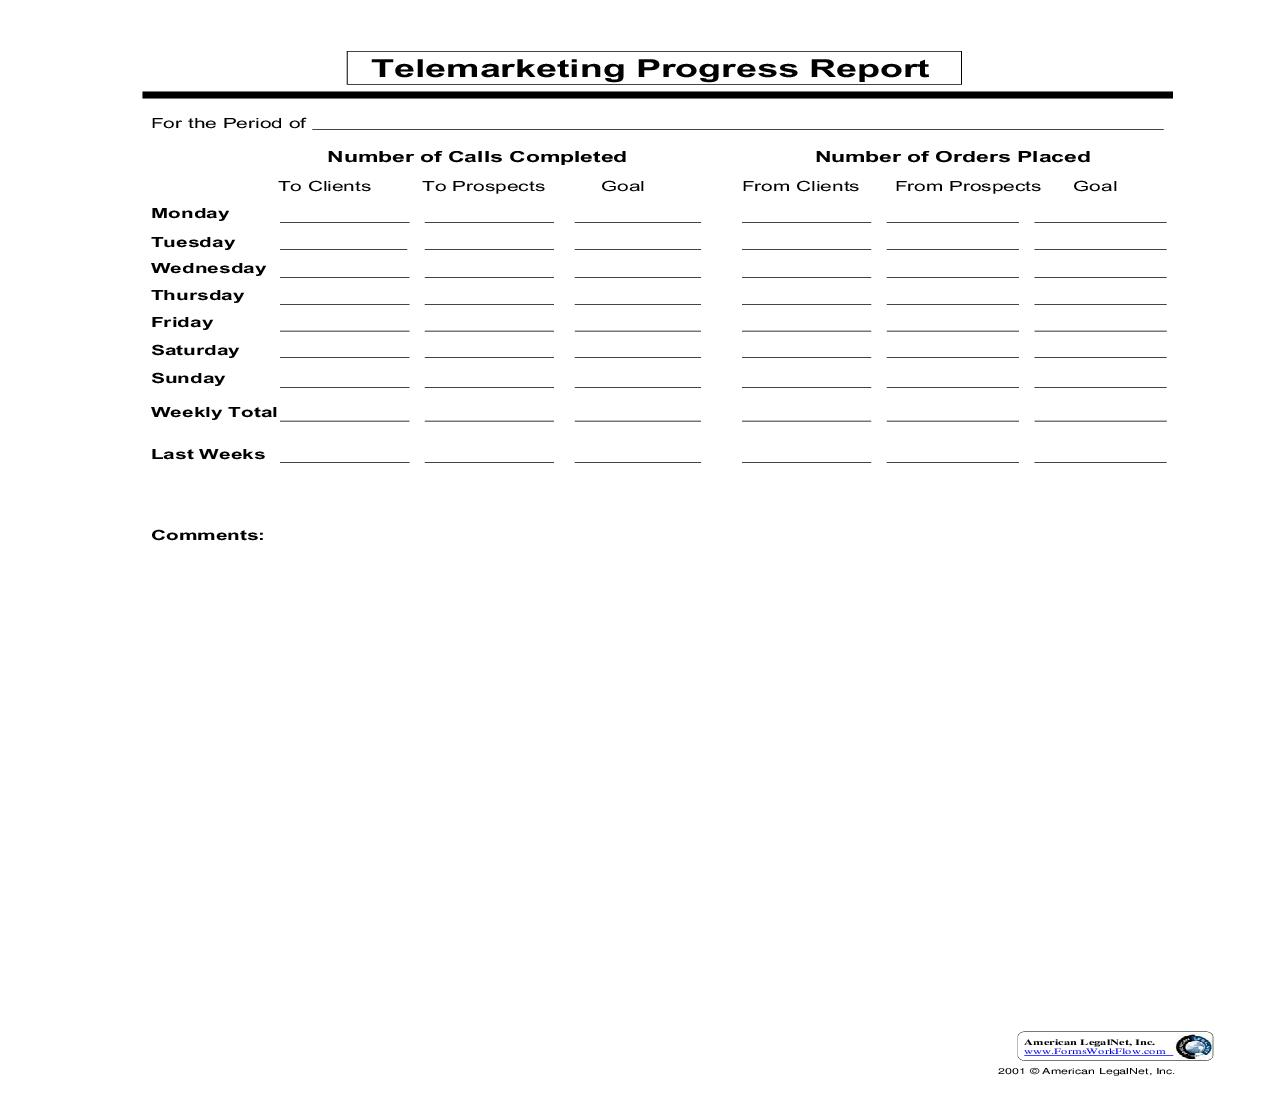 Telemarketing Progress Report | Pdf Fpdf Doc Docx | Business Forms